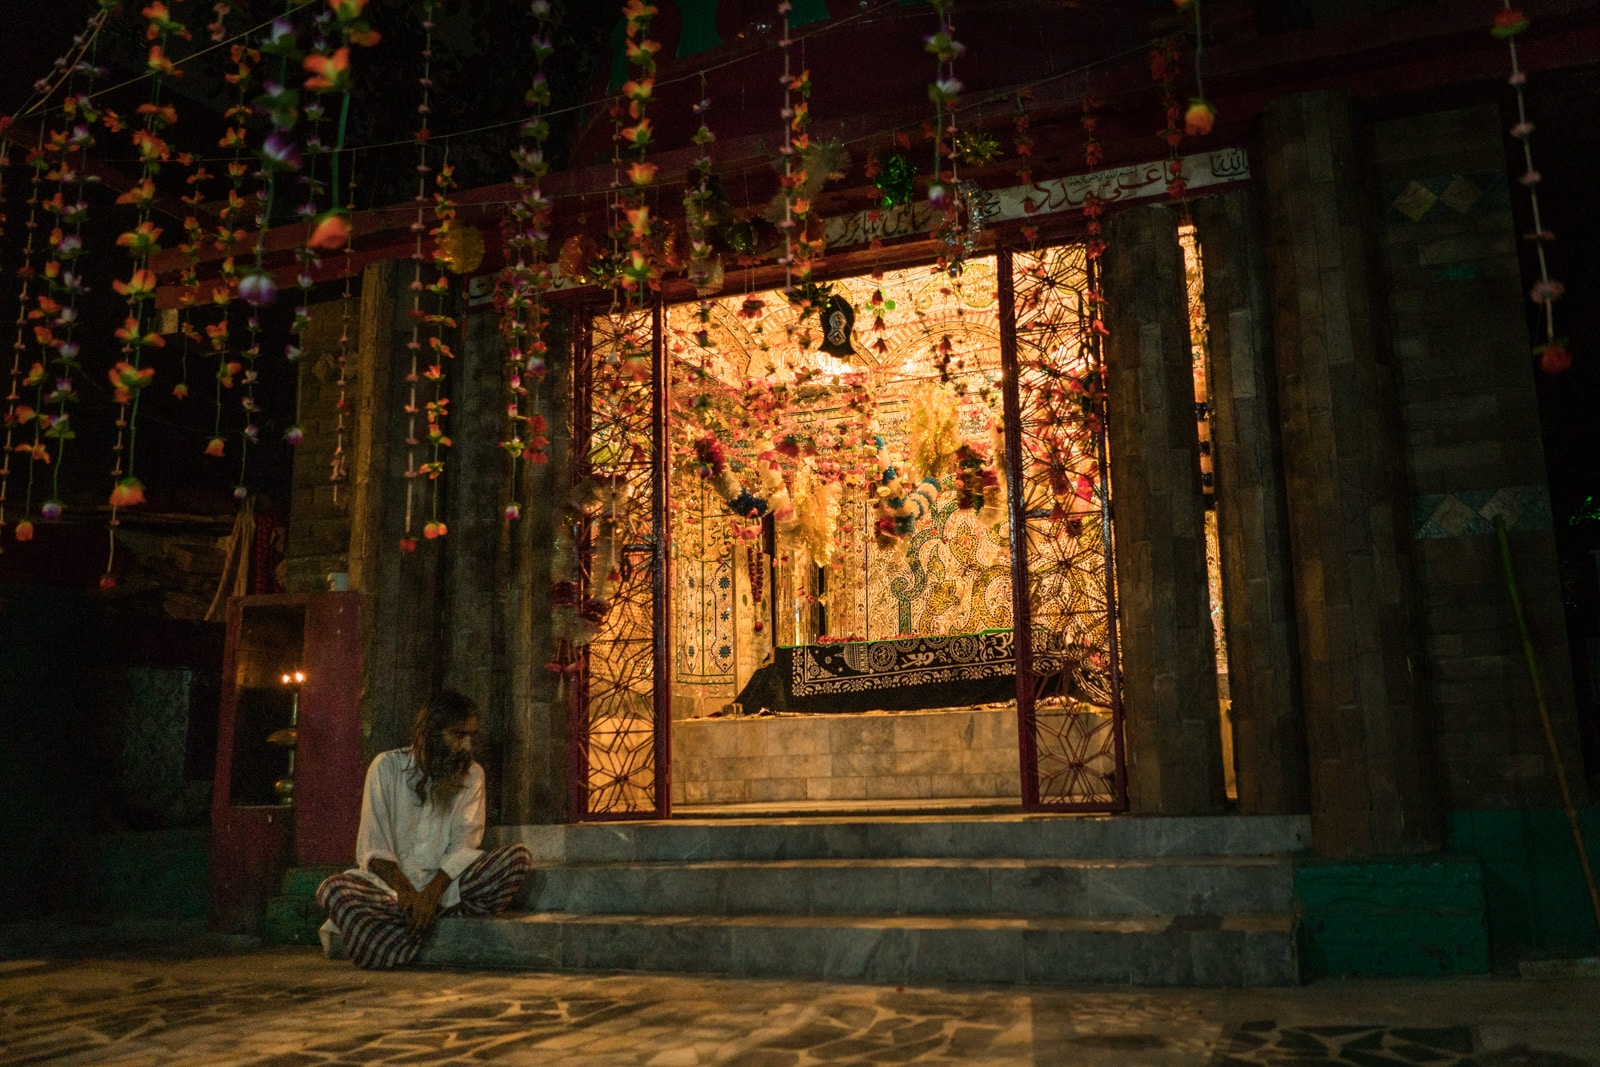 Sufi dhamal in Lahore, Pakistan - Shah Jamal shrine at night - Lost With Purpose travel blog